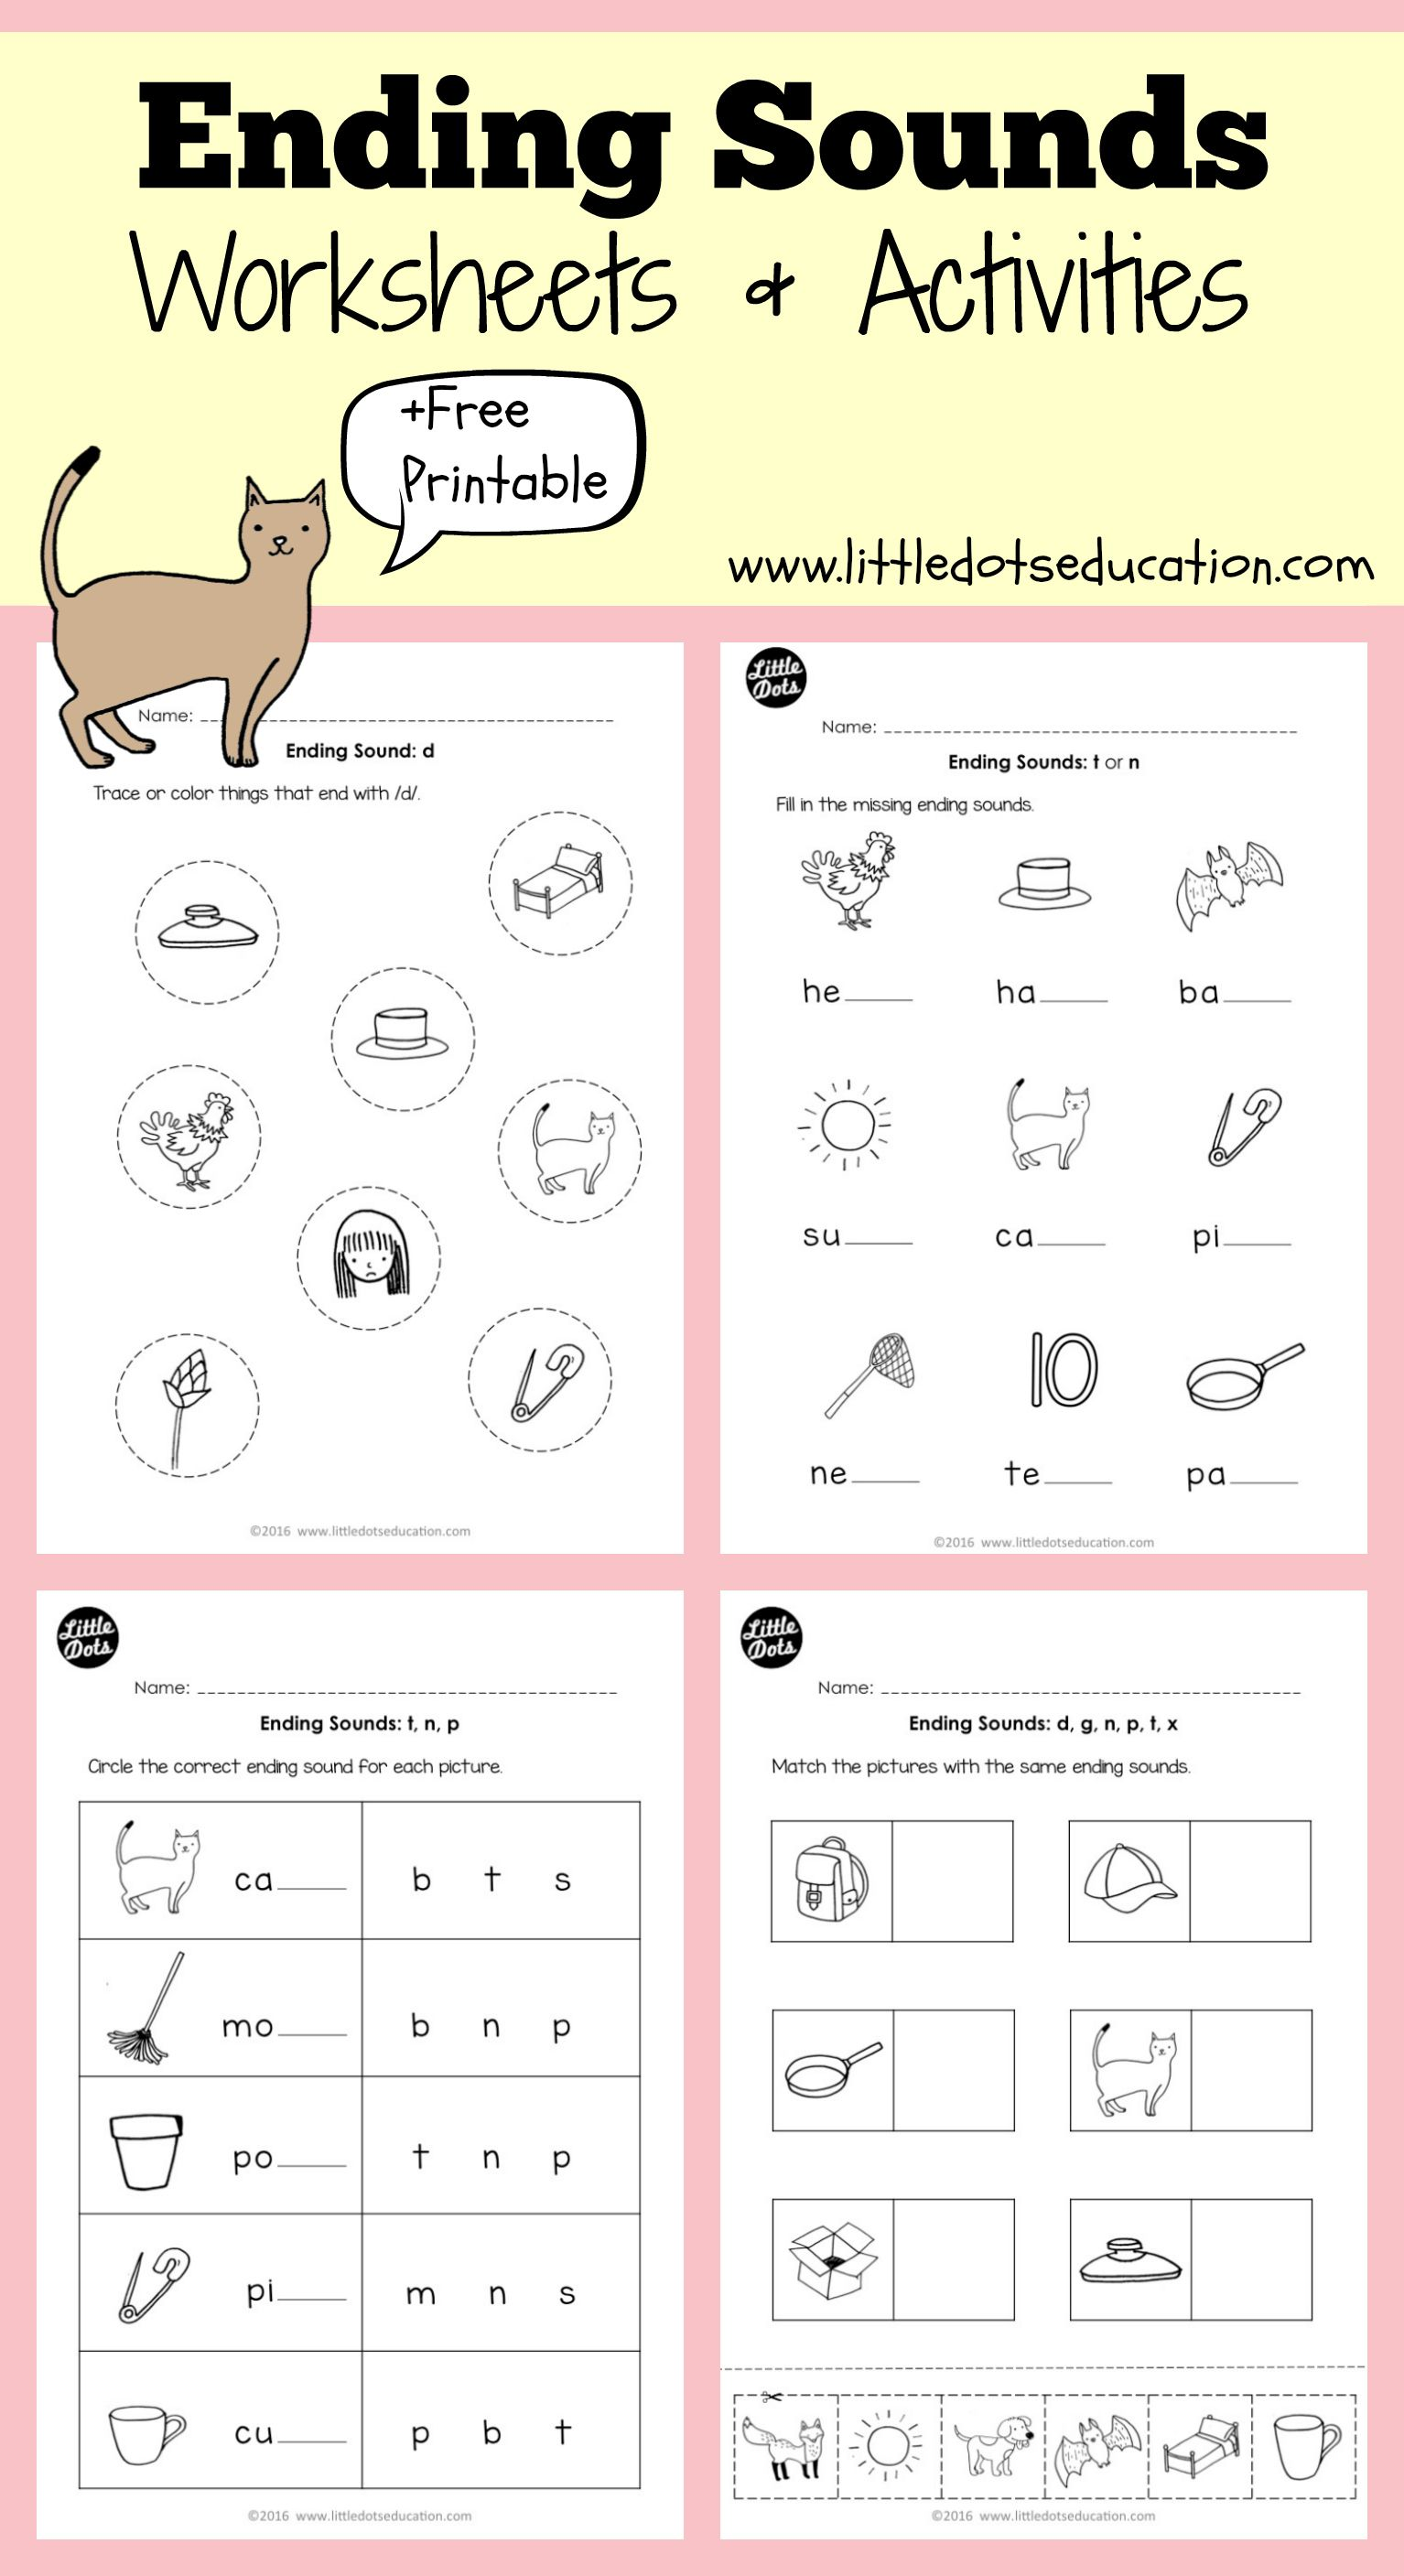 Ending Sounds Worksheets And Activities Kindergarten Worksheets Kindergarten Reading Worksheets Kindergarten Worksheets Printable [ 2815 x 1534 Pixel ]